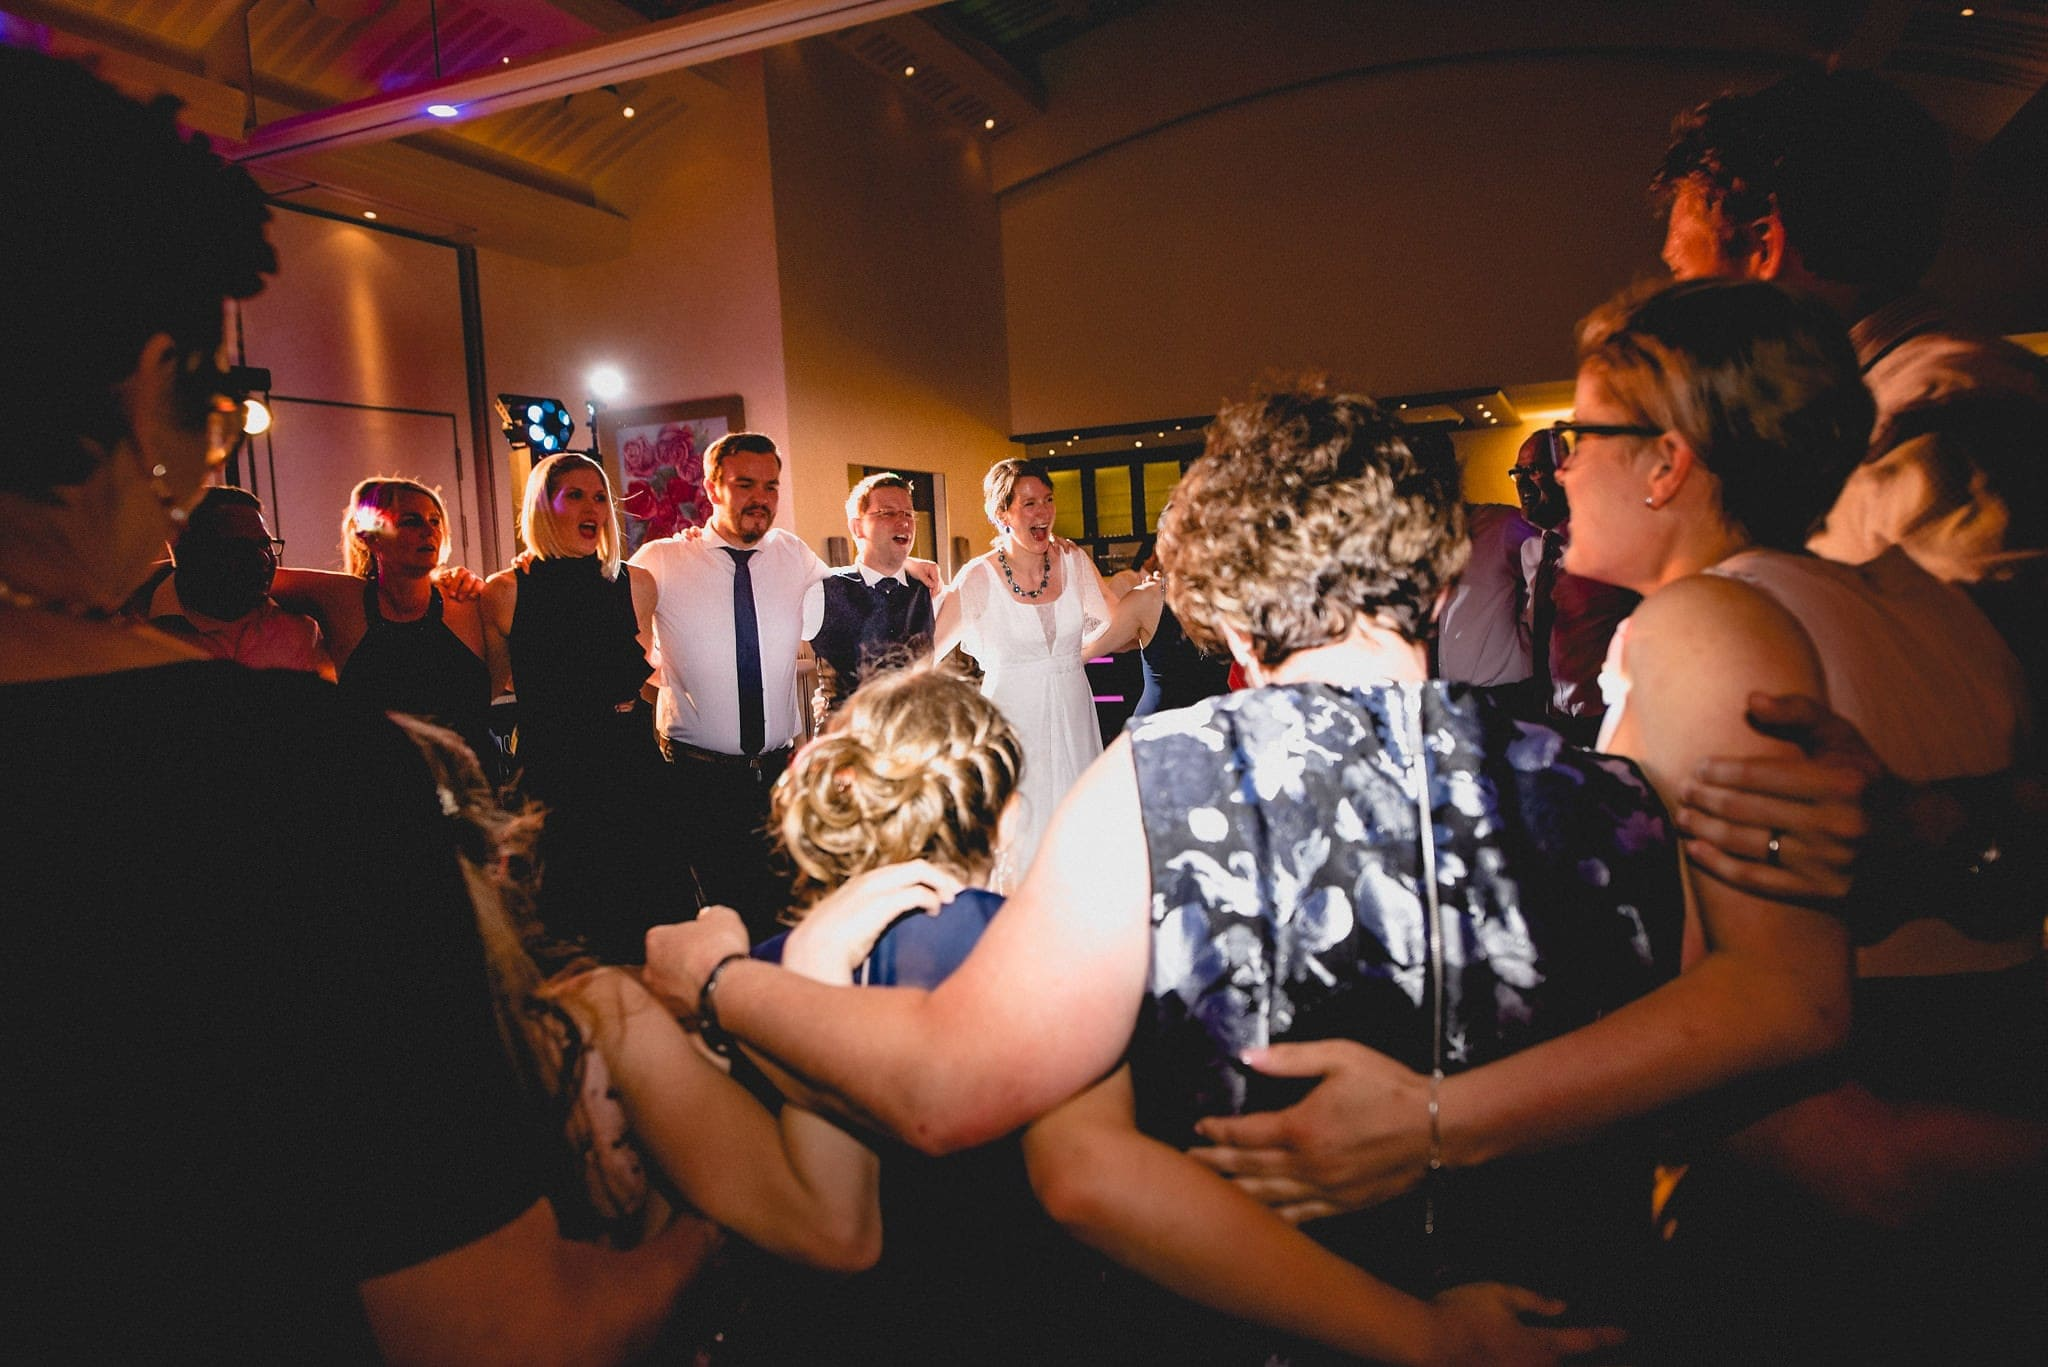 Bride, Groom and their wedding guests dancing the conga